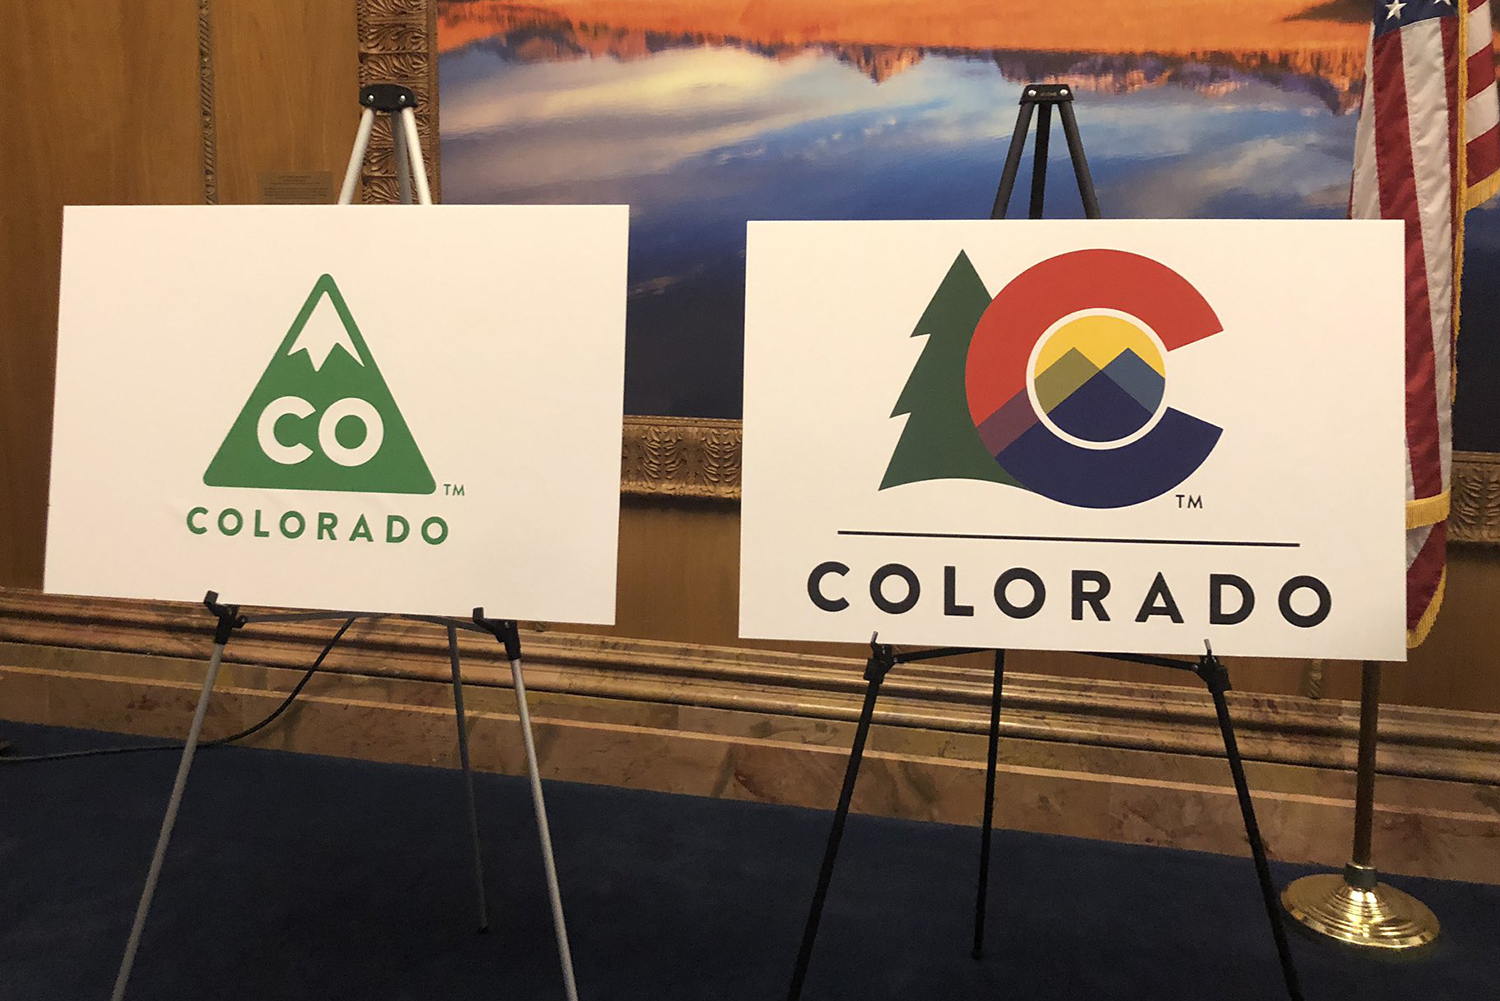 <p>Gov. Jared Polis announced the creation of a new Colorado state logo with colors and themes drawn from the state flag — and a tree — at the state Capitol in Denver, March 26, 2019.</p>